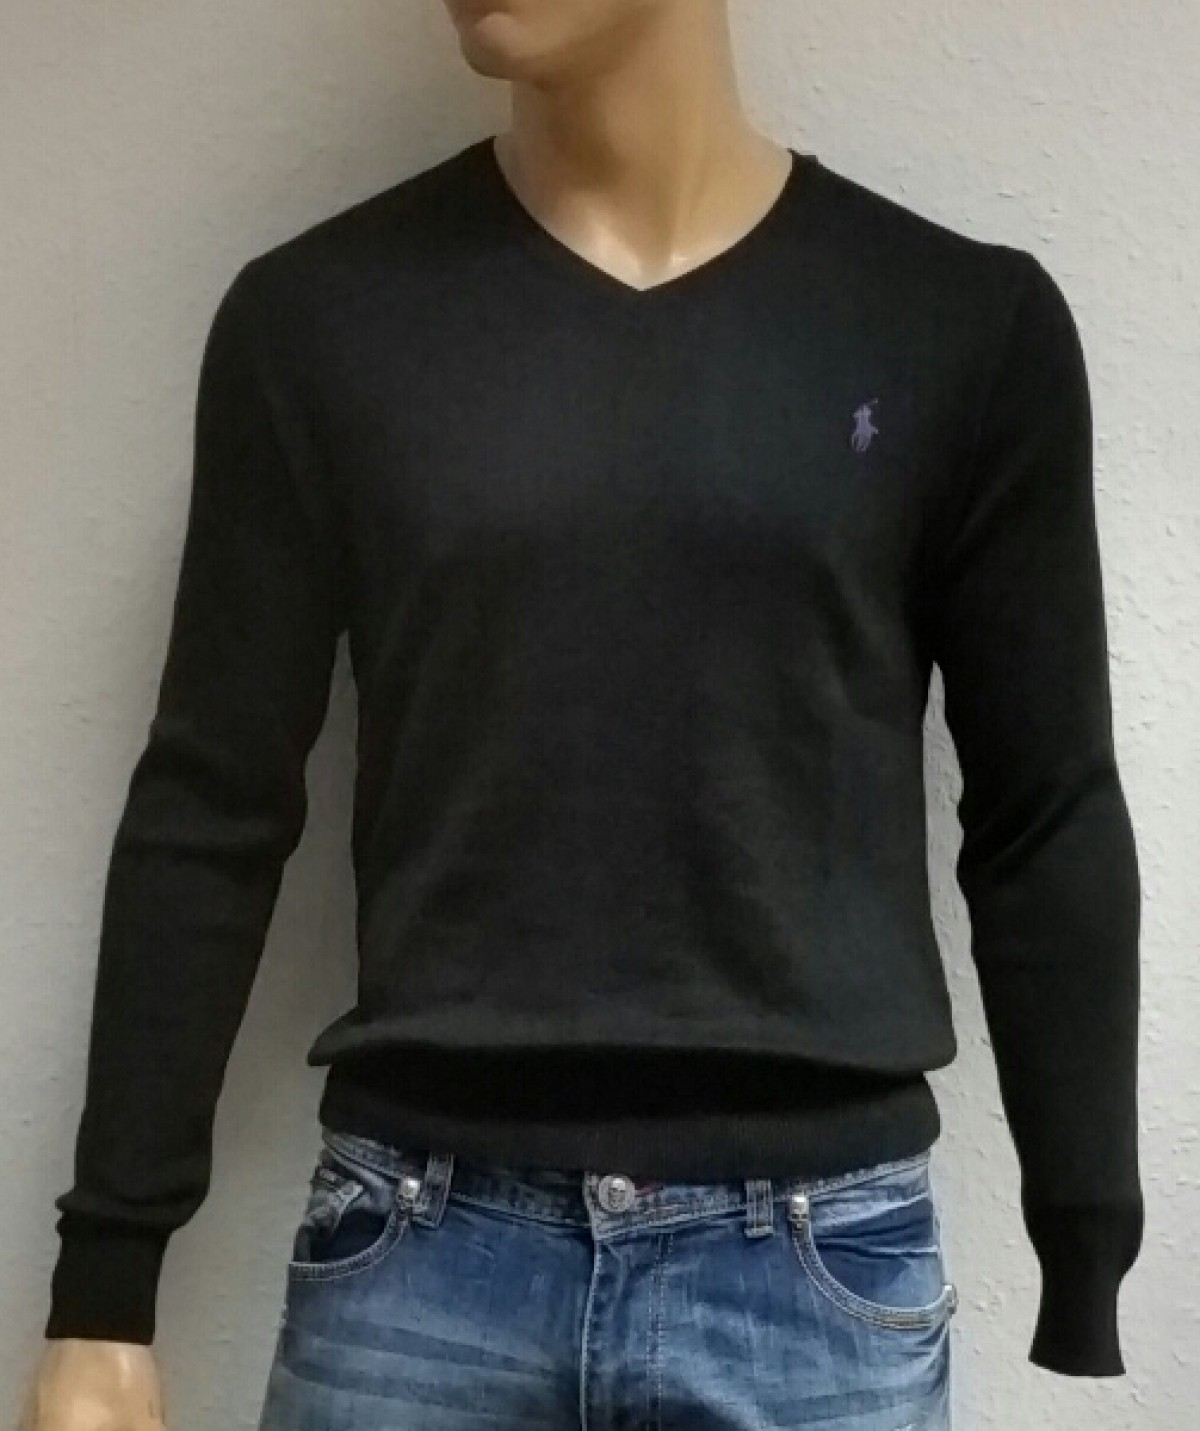 ralph lauren v neck herren pullover s xxl. Black Bedroom Furniture Sets. Home Design Ideas